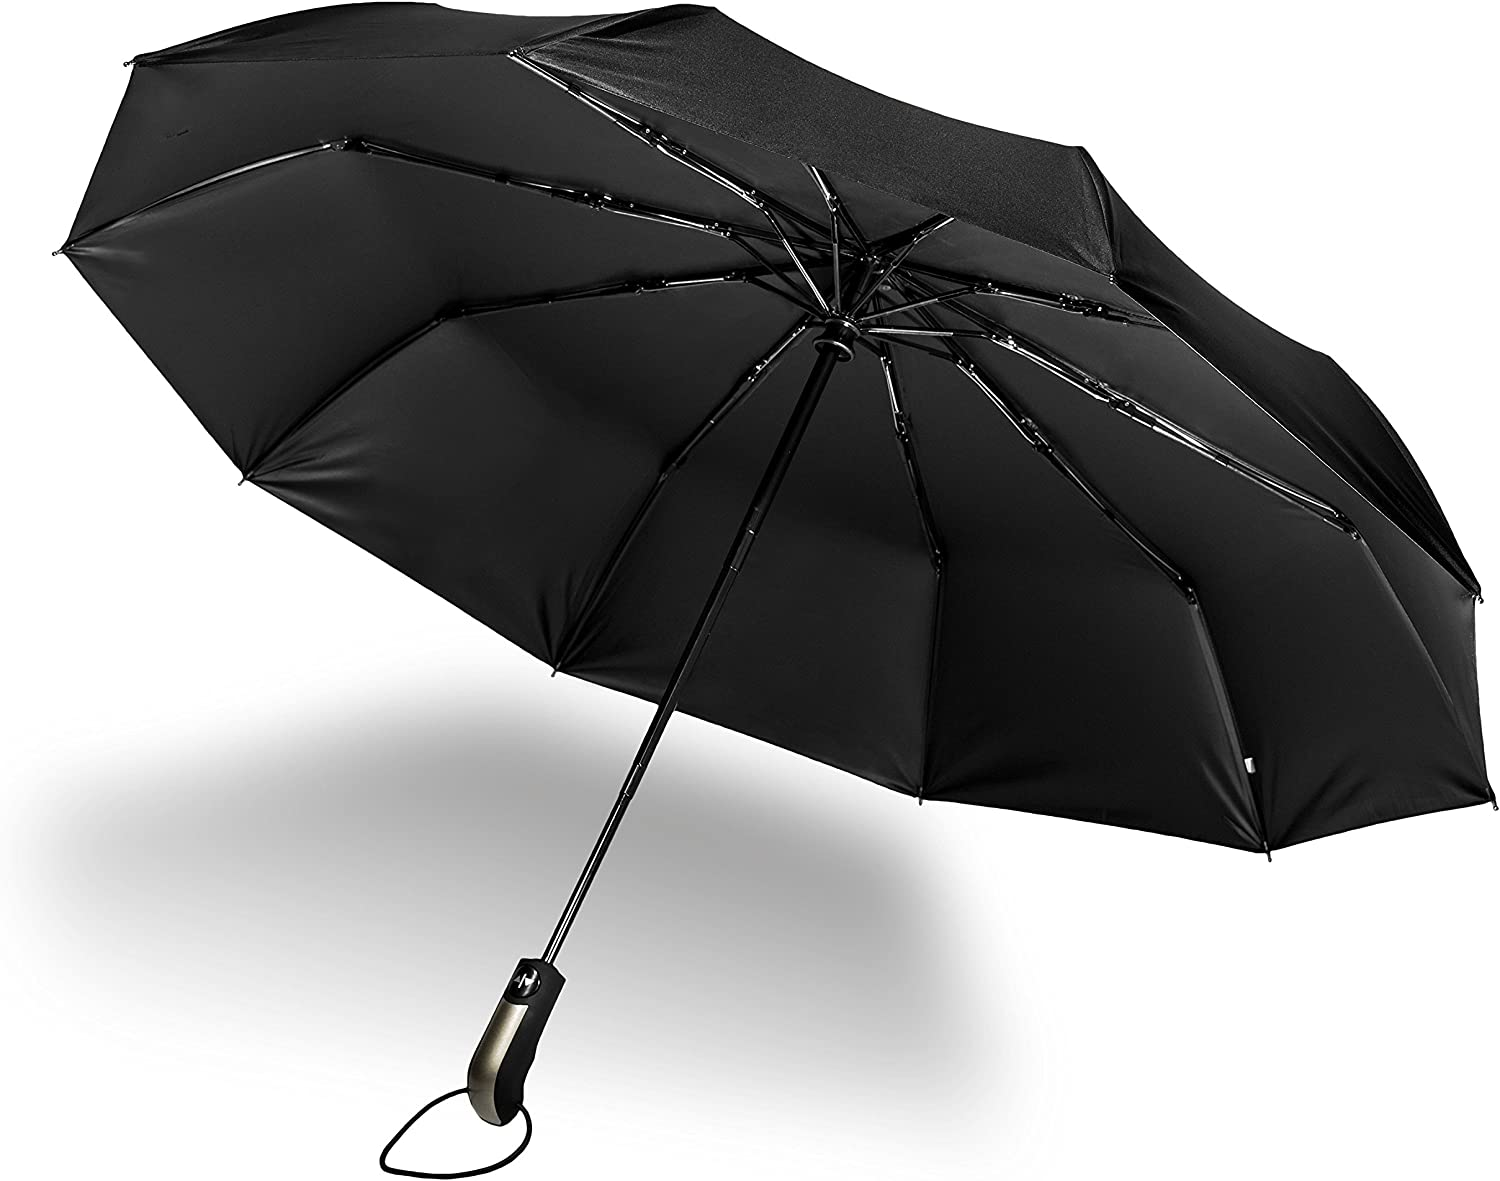 Umbrella Windproof Reinforced Frame Auto Open Close Rain Heavy Duty  Black